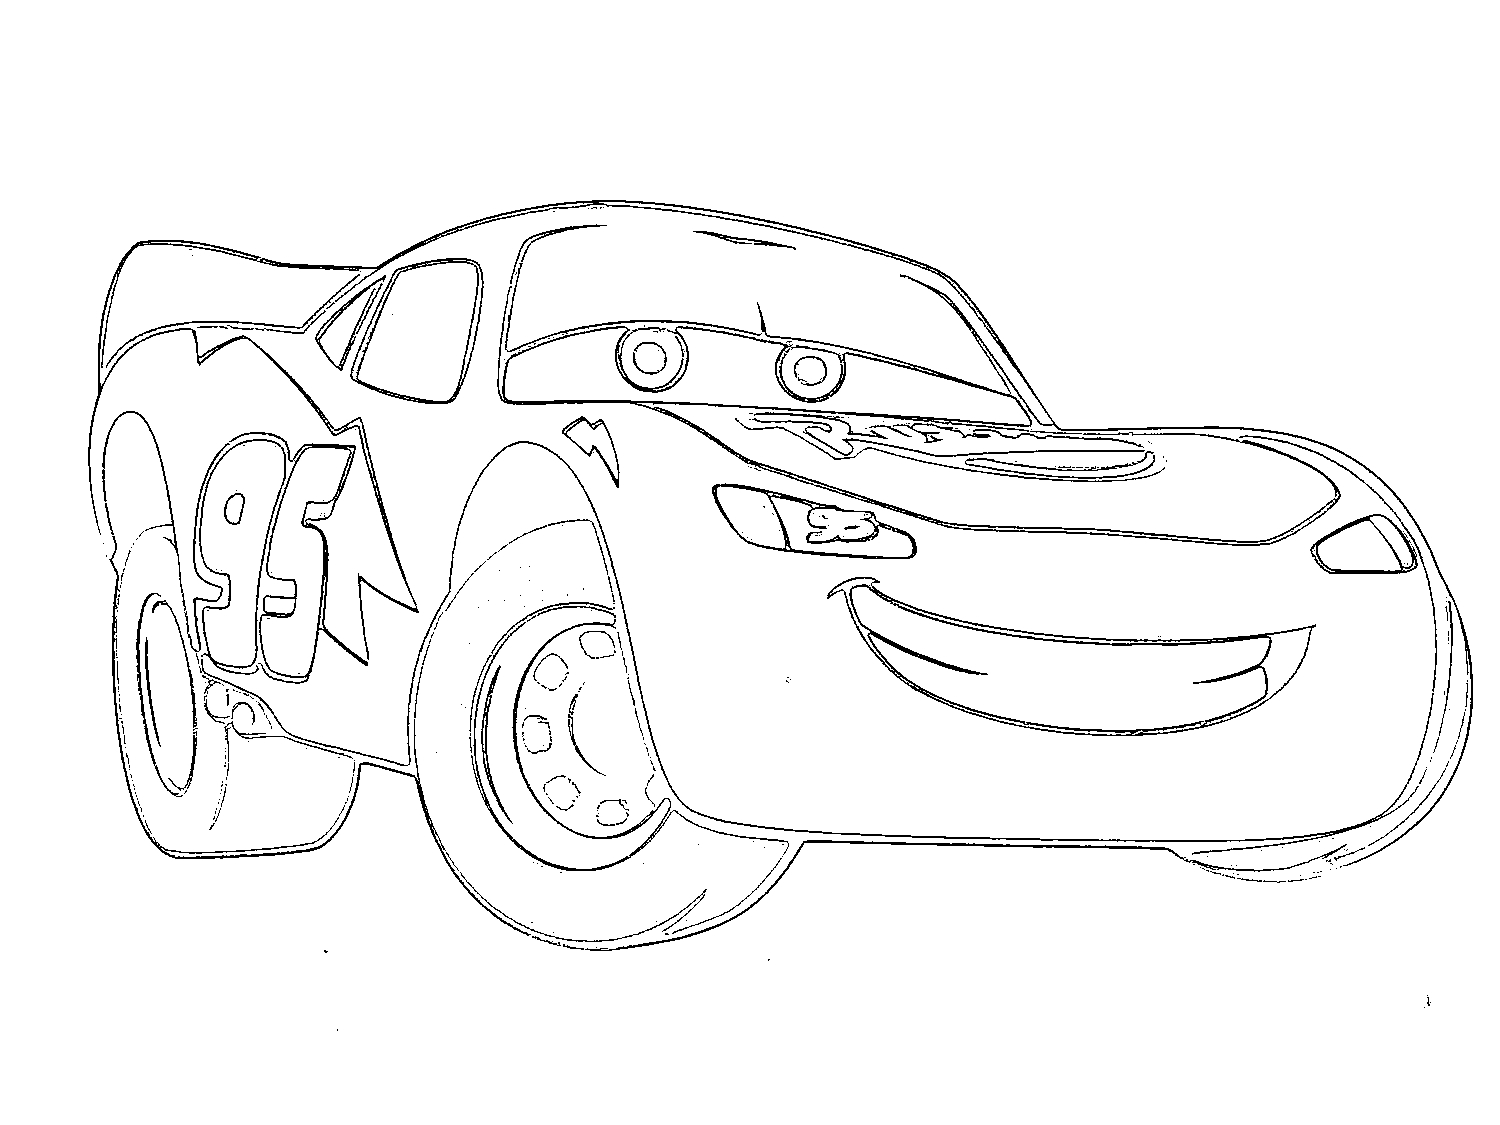 lightning mcqueen free coloring pages lightning mcqueen free coloring pages free pages lightning mcqueen coloring